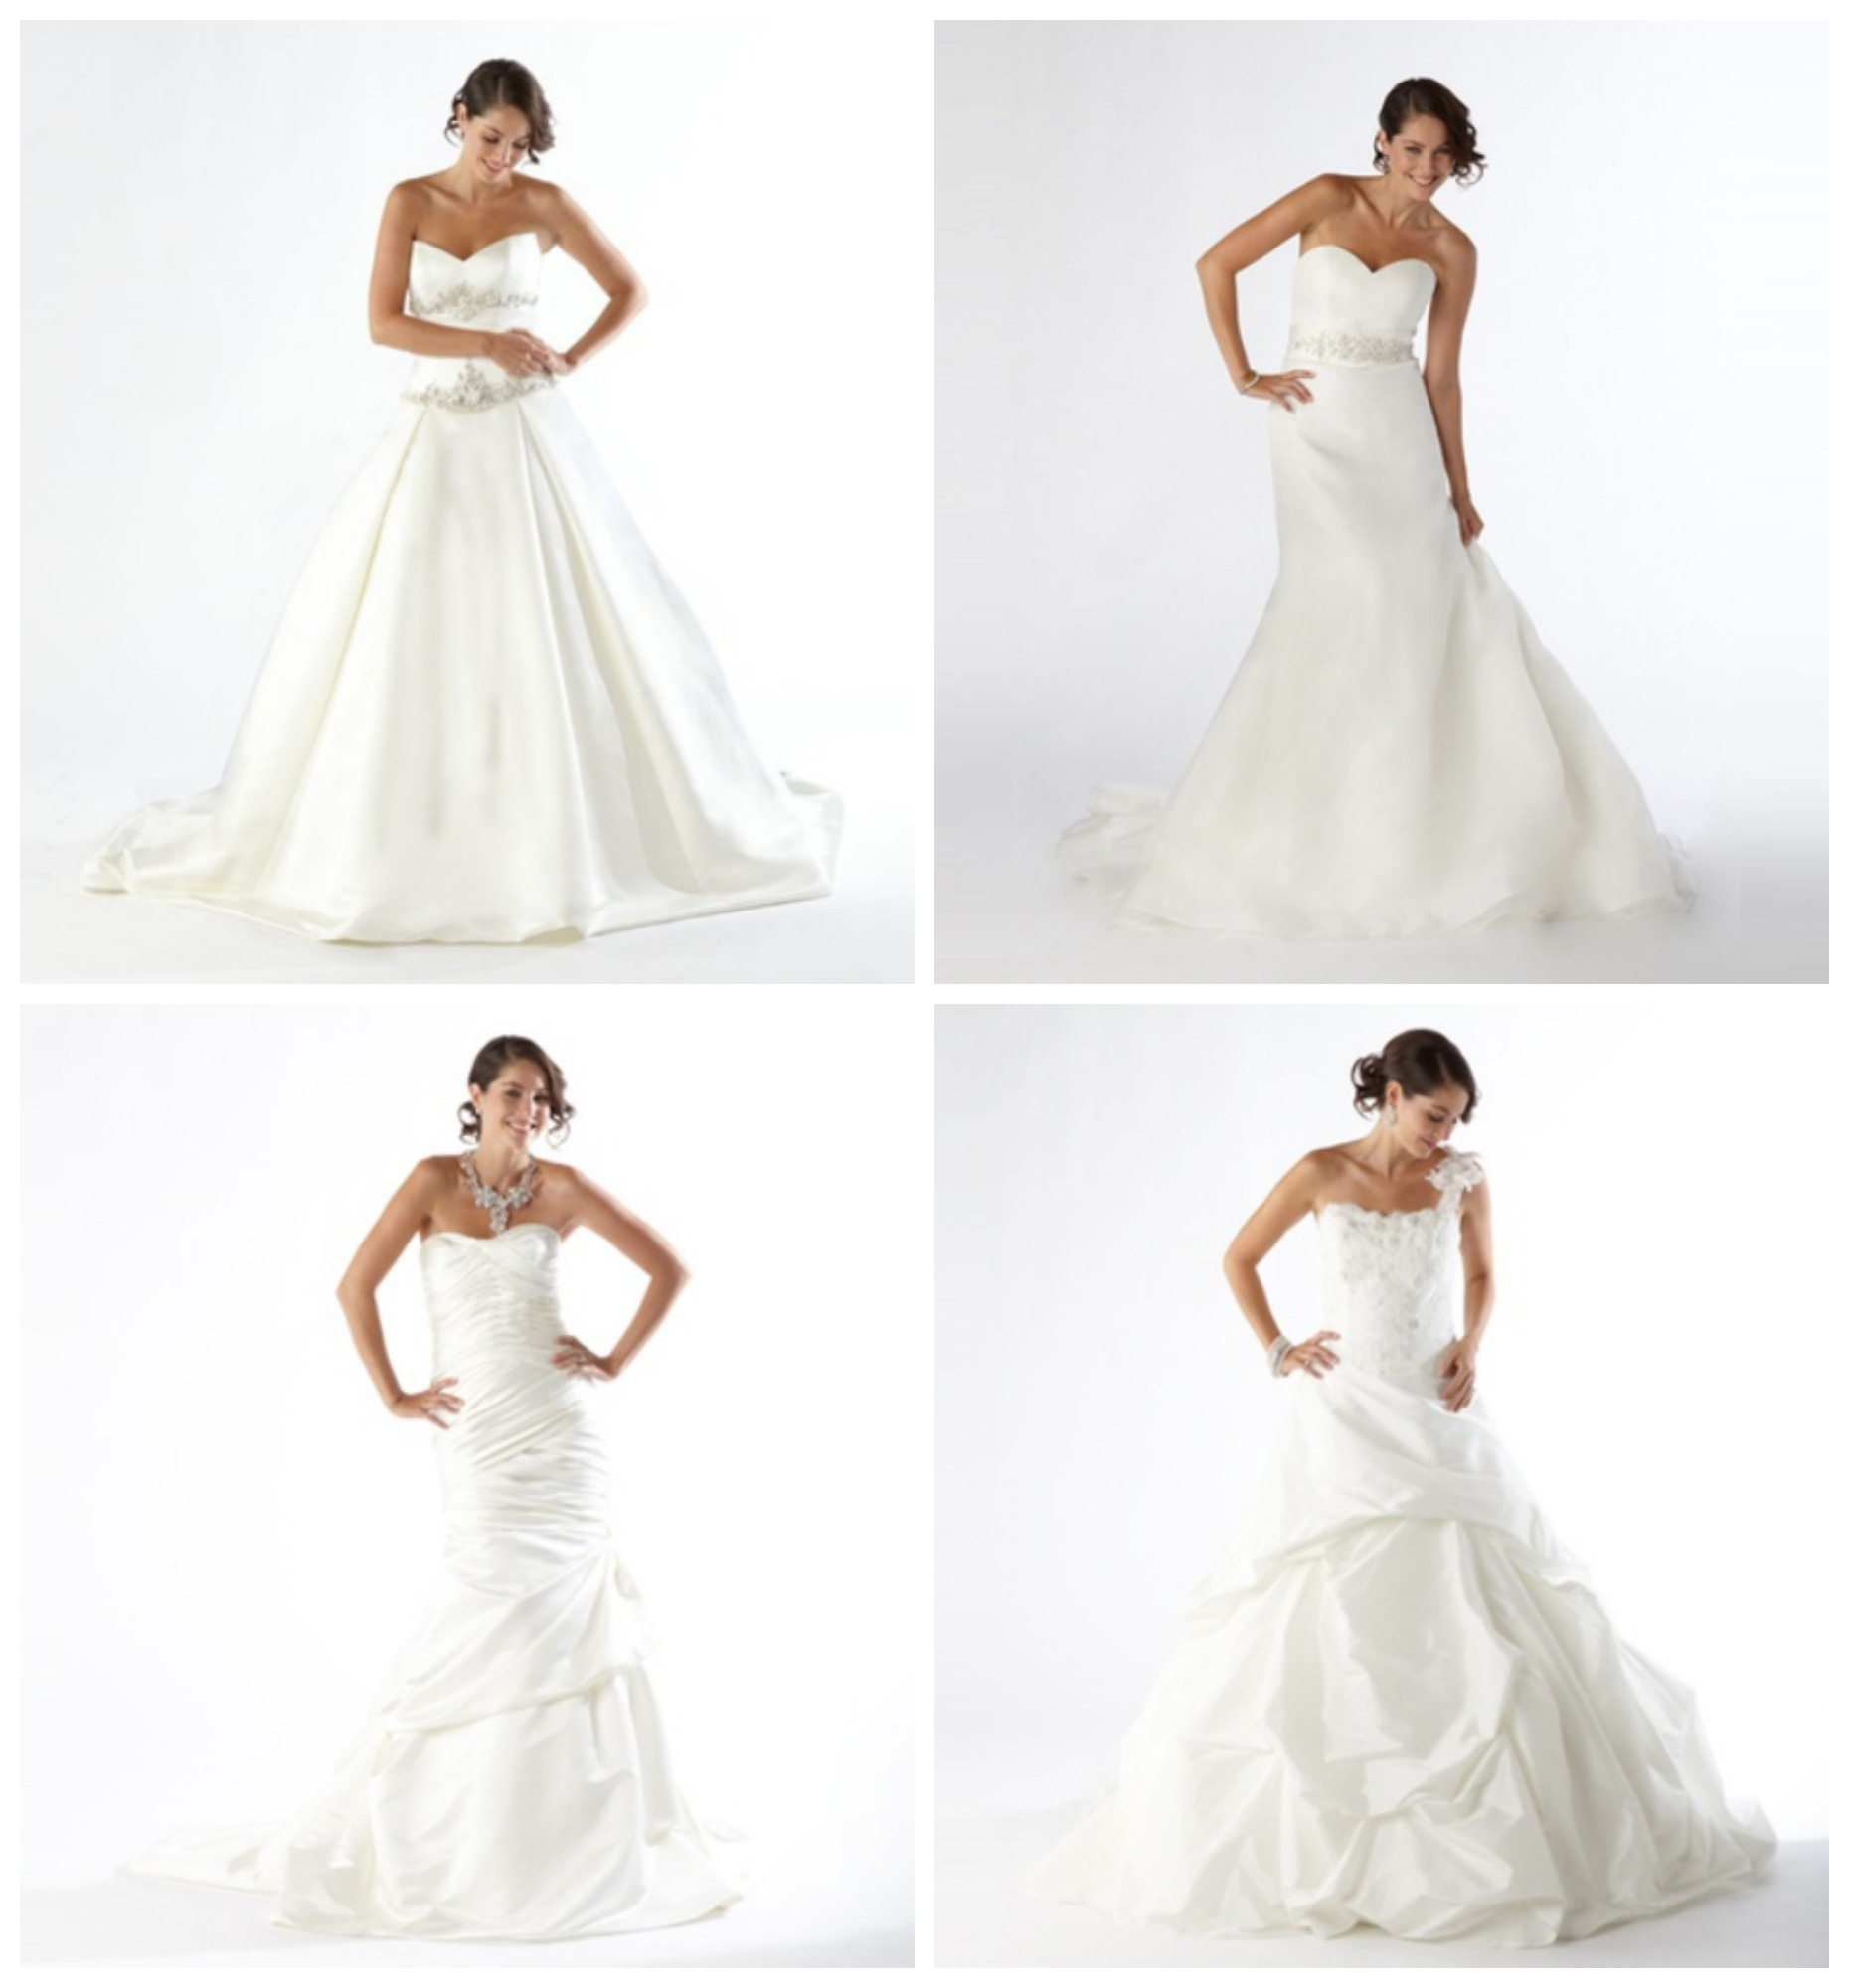 Hot kirstie kelly couture wedding gowns just 17499 reg 1350 groupon wedding dress deal junglespirit Image collections